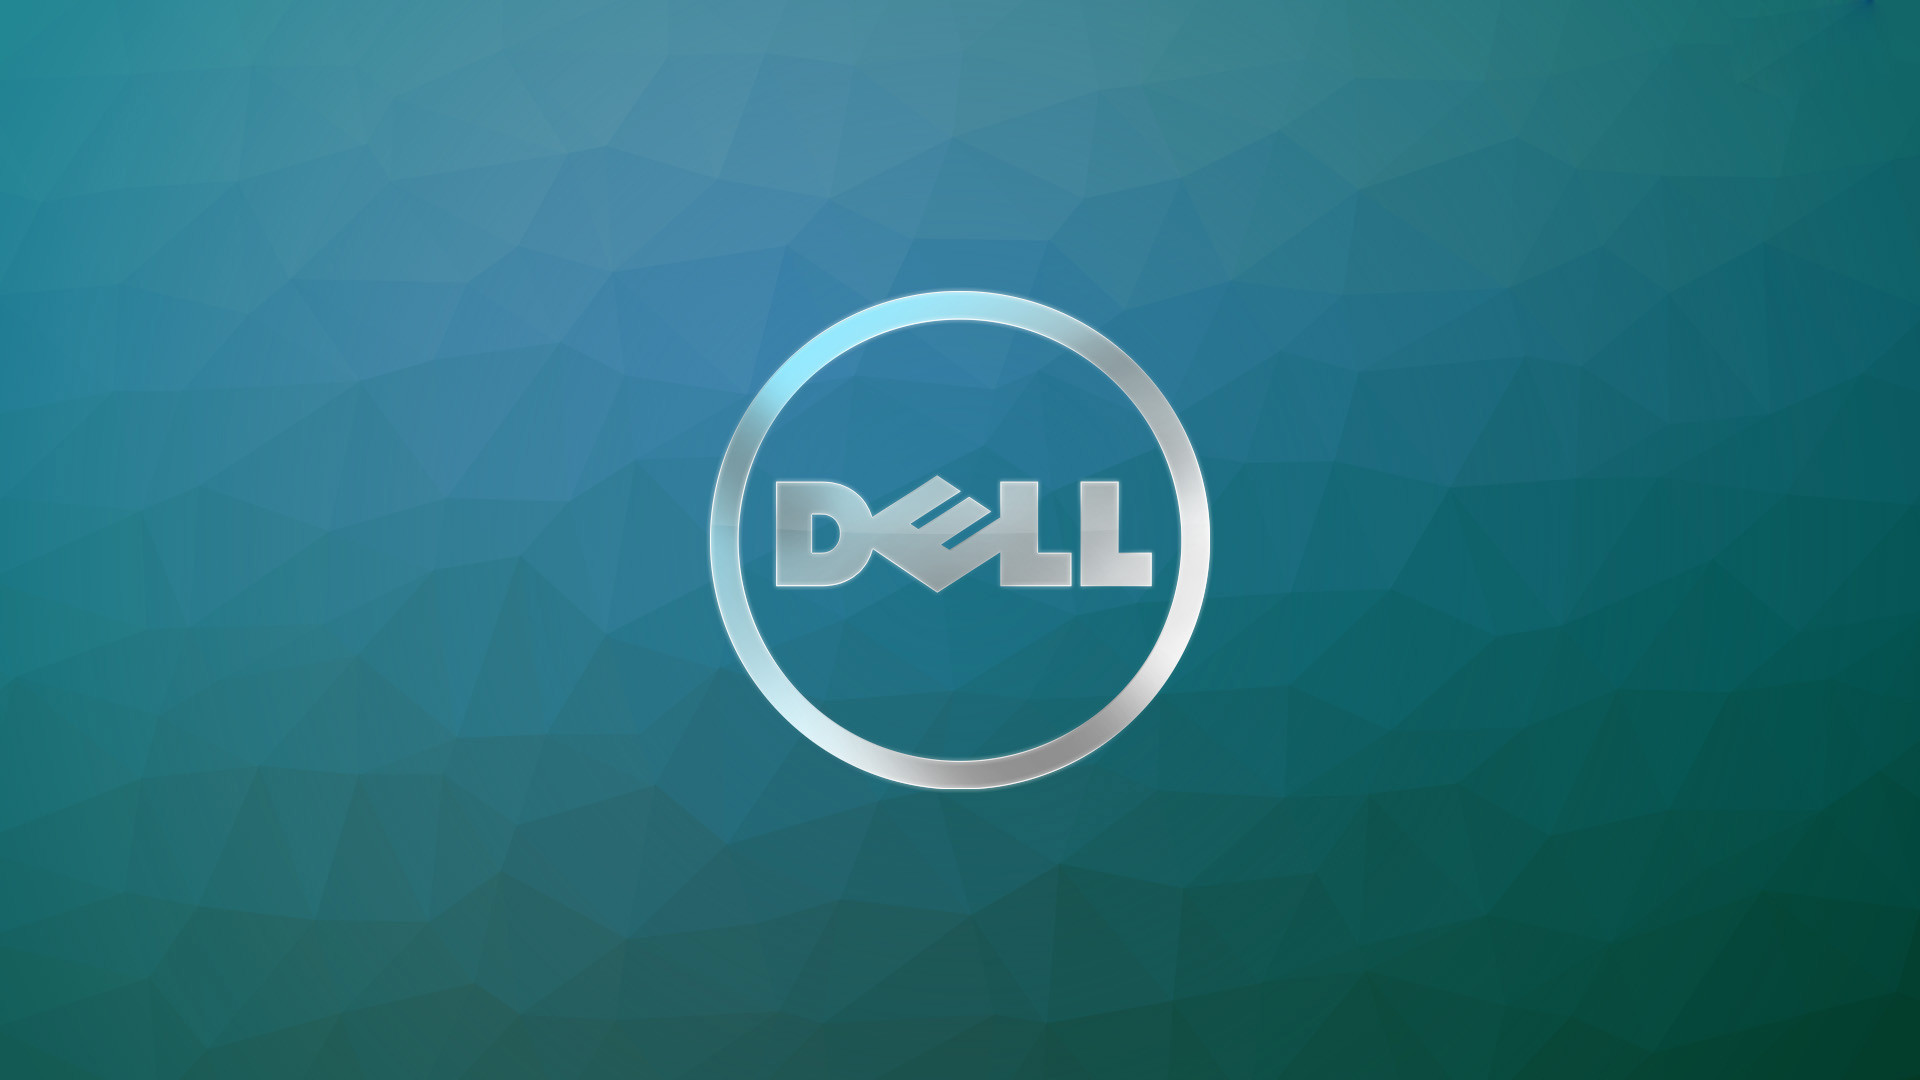 1920x1080 Dell logo hd wallpapers.